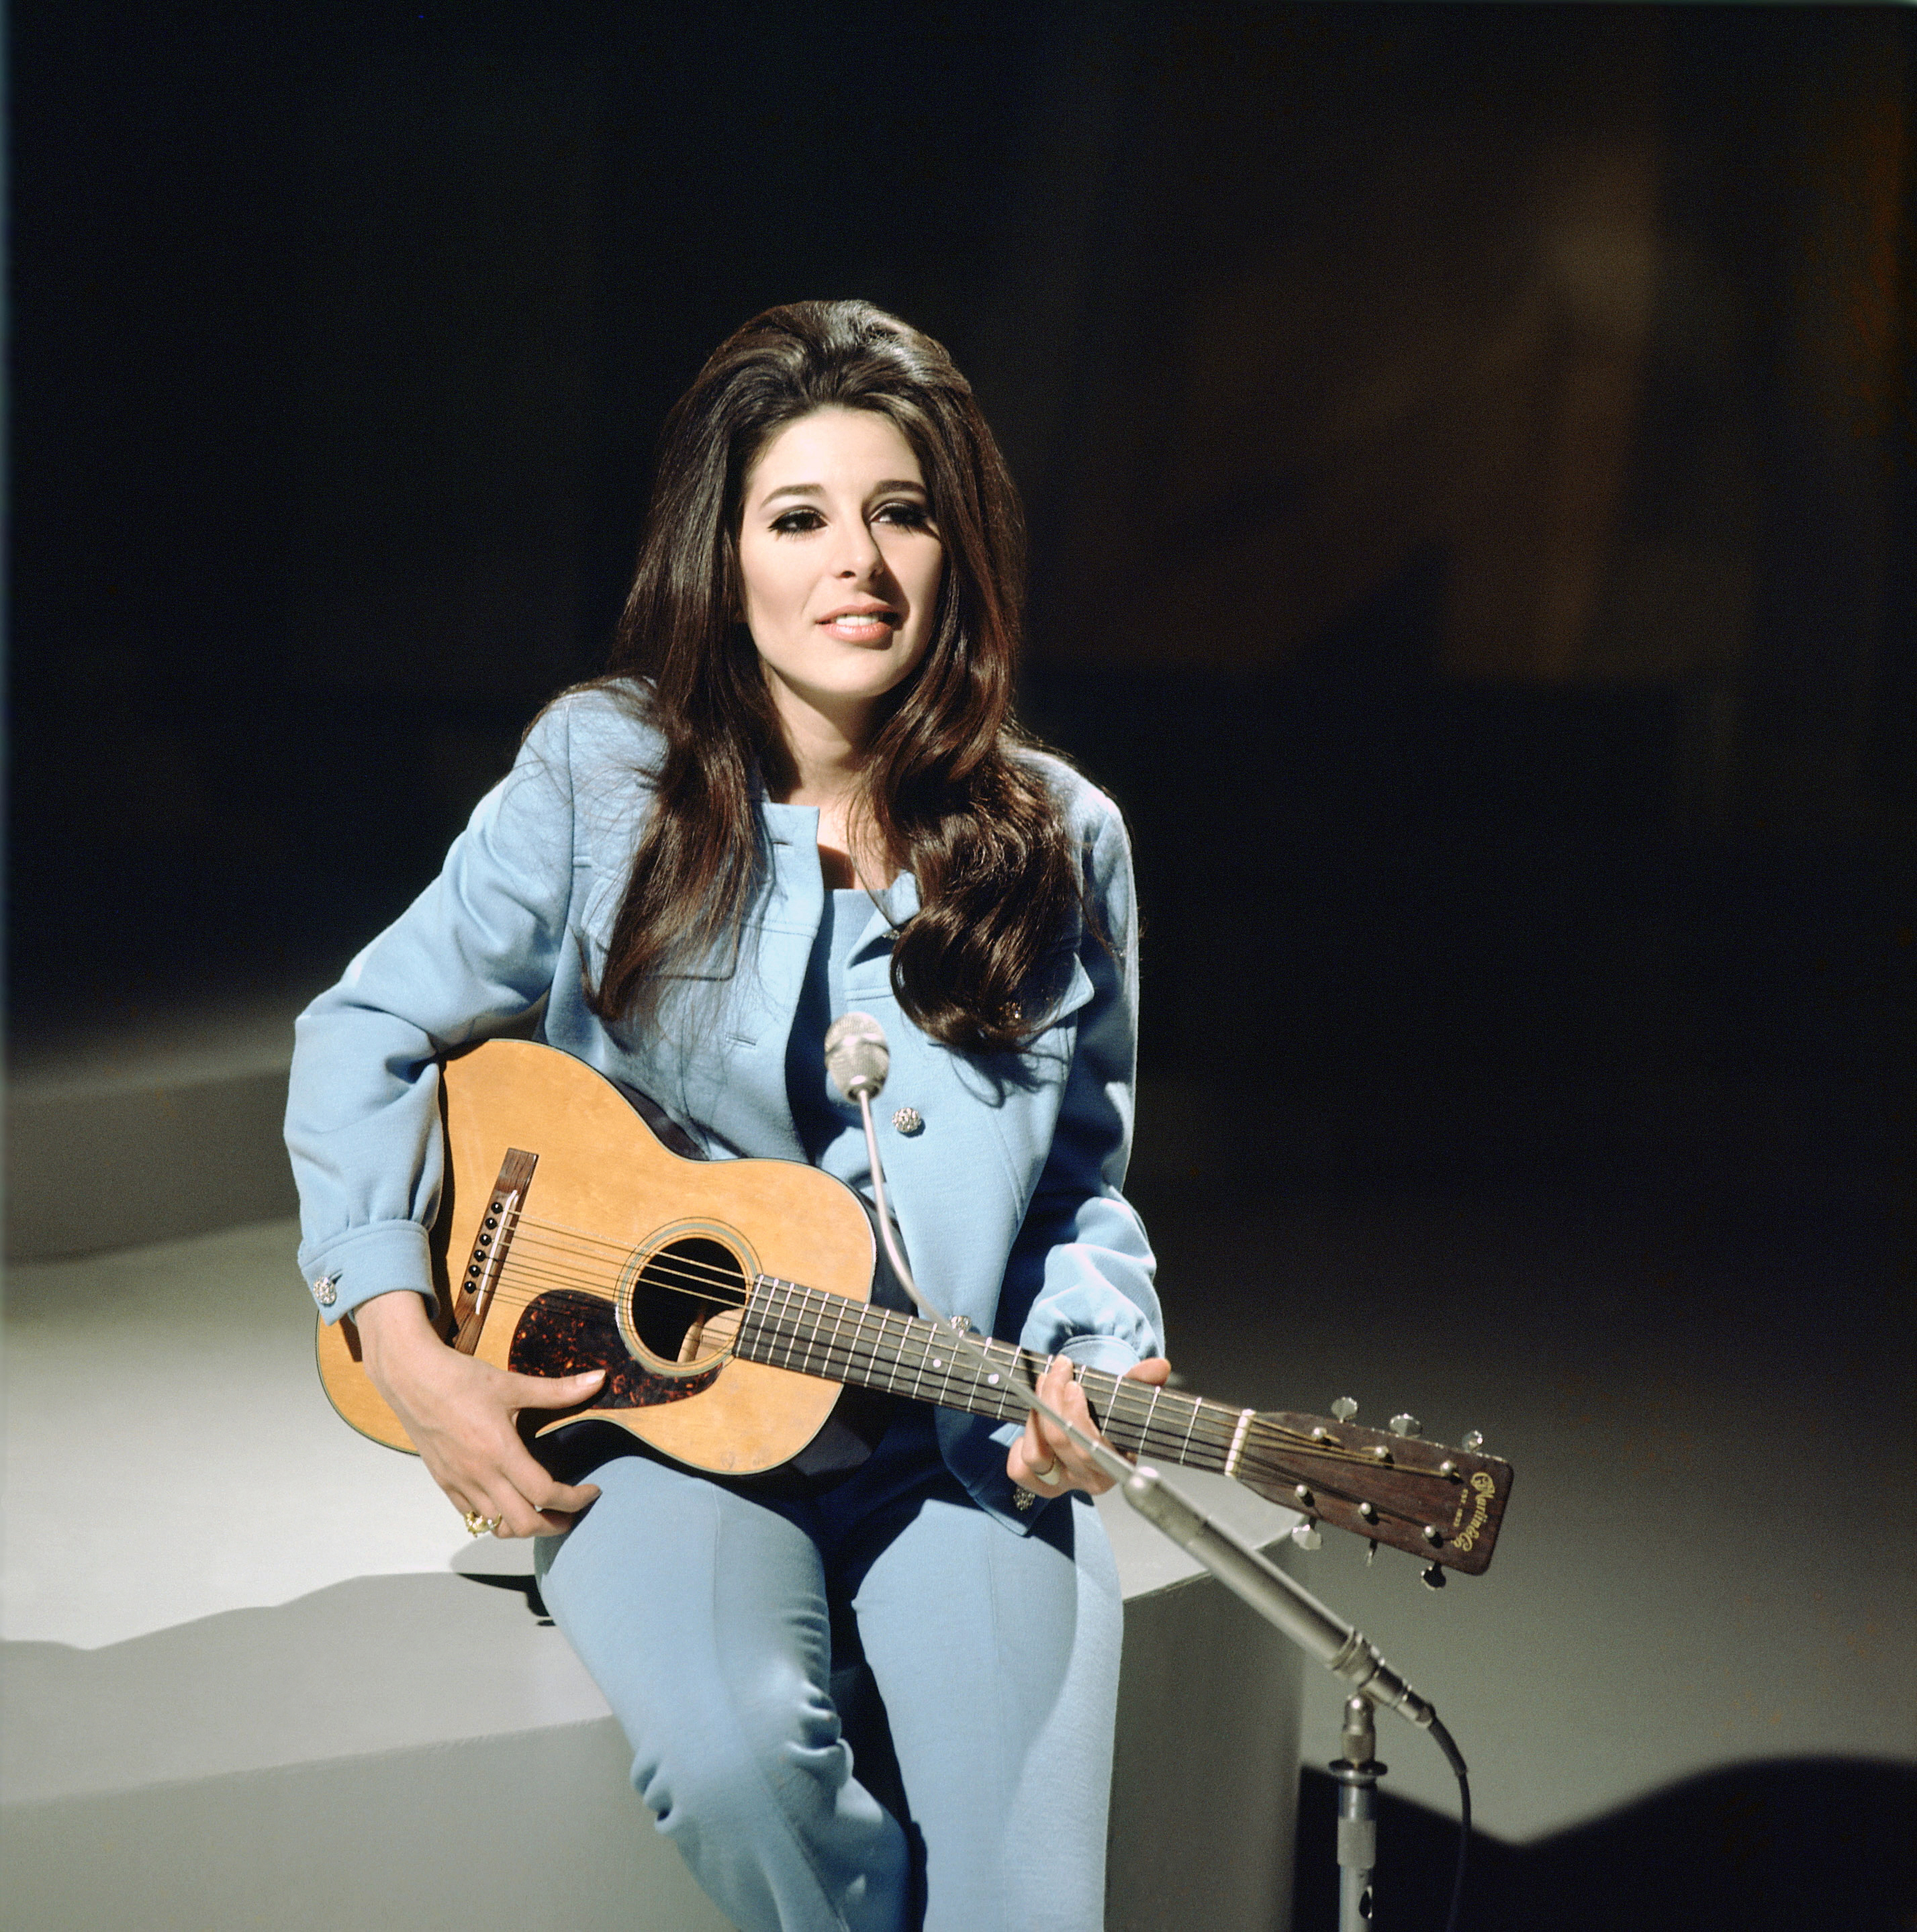 Bobbie Gentry at the BBC with her Martin guitar1968